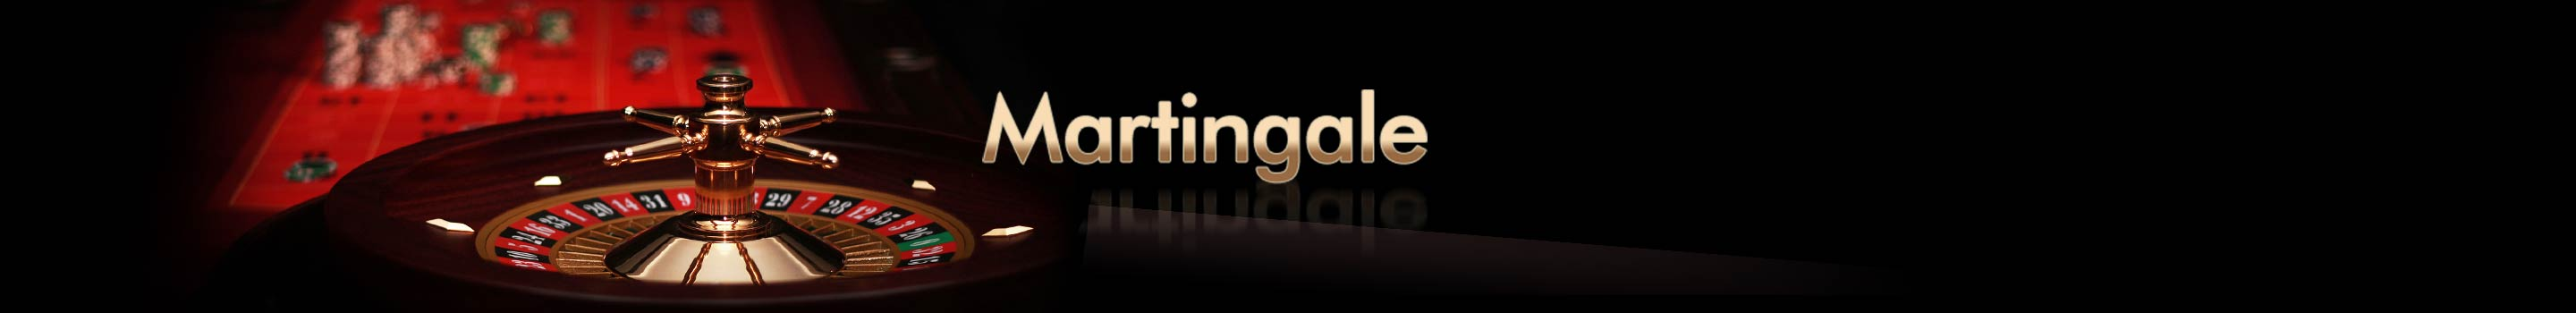 System Martingale'a